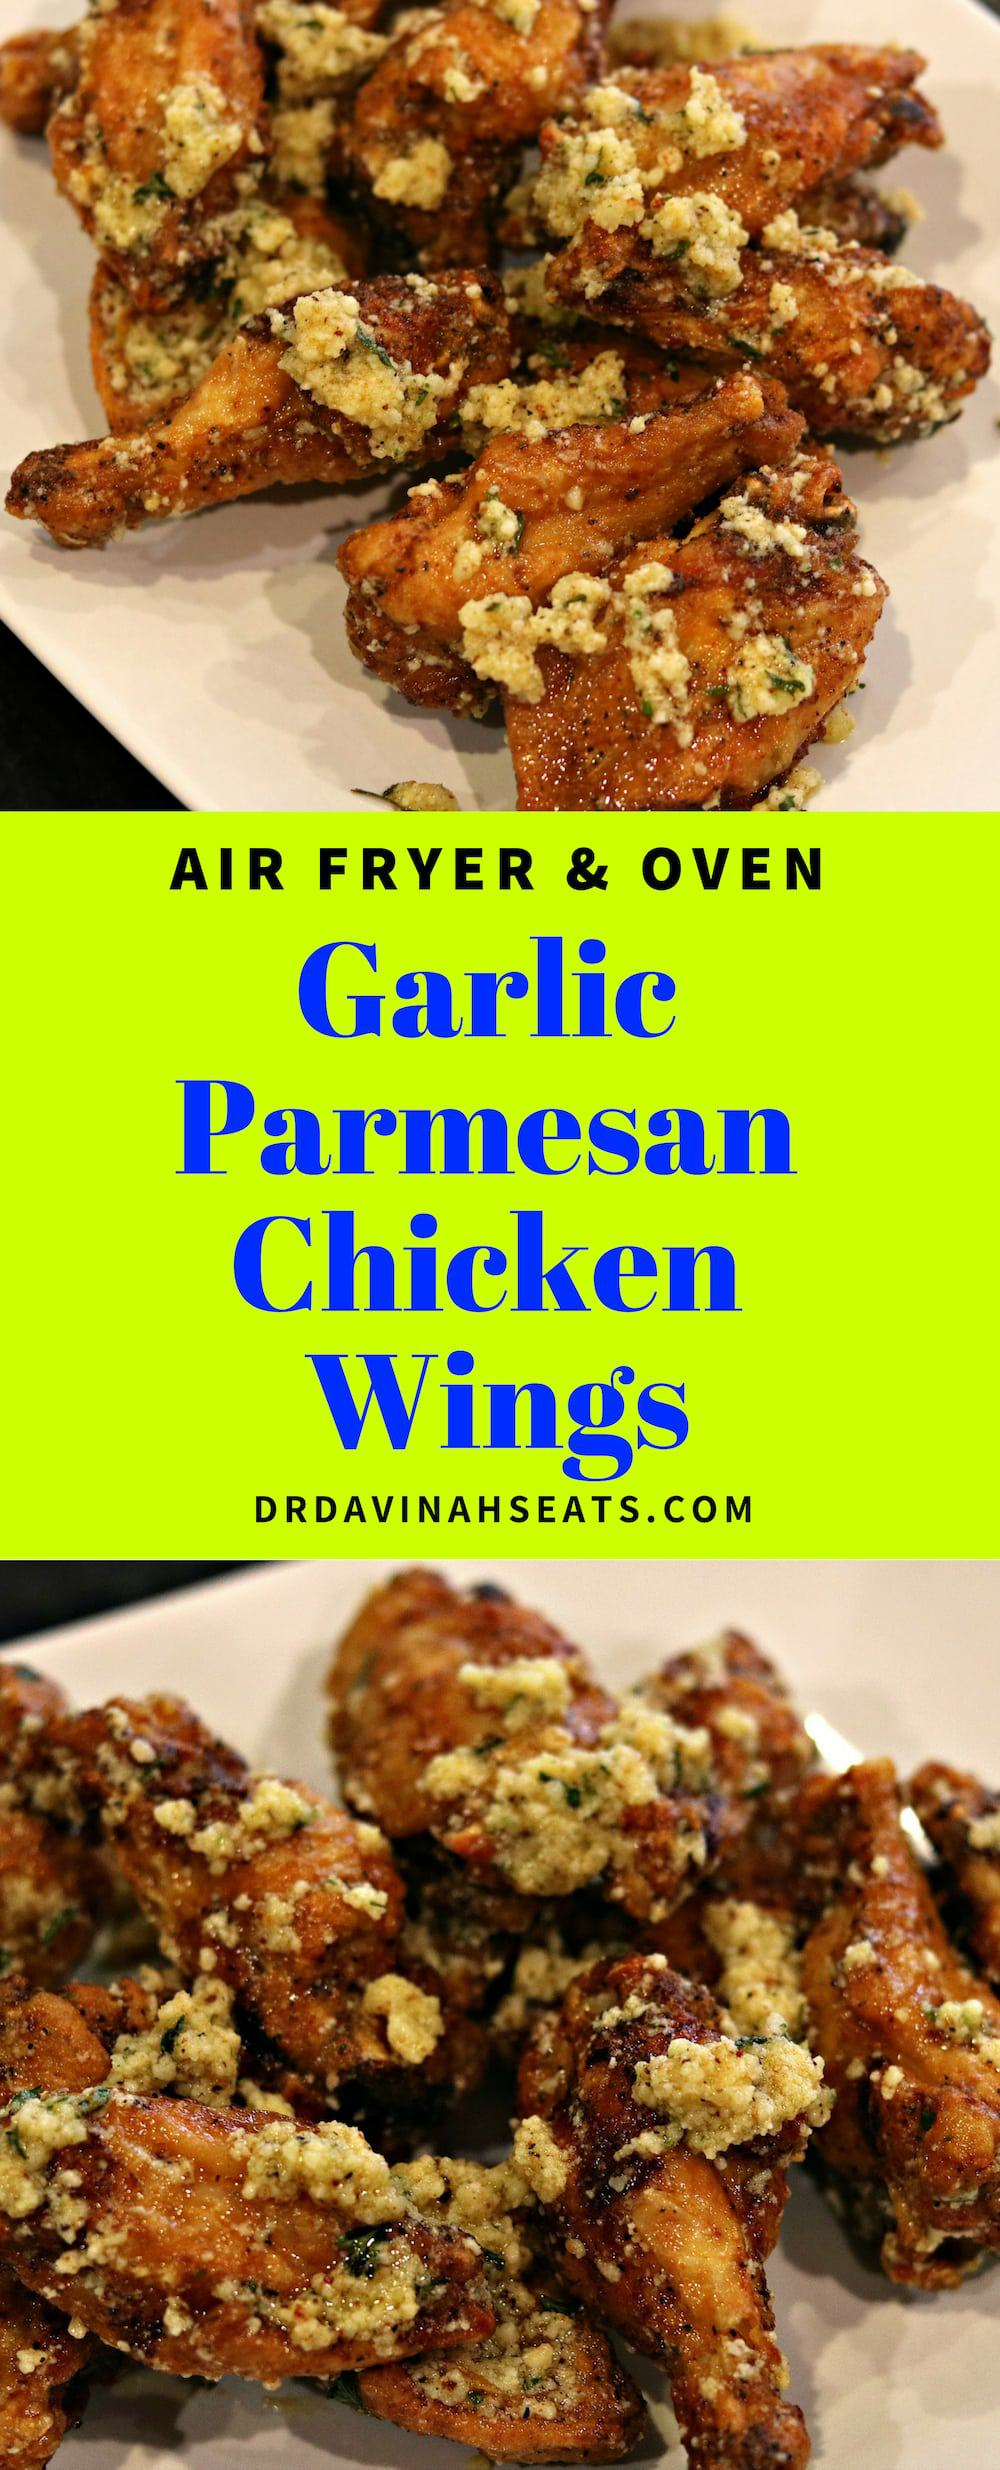 A quick recipe for Air Fryer Garlic Parmesan Wings (Keto Friendly) #chickenwings #garlicparmesanwings #garlicparmesan #keto #lowcarb #airfryerrecipe #airfryer